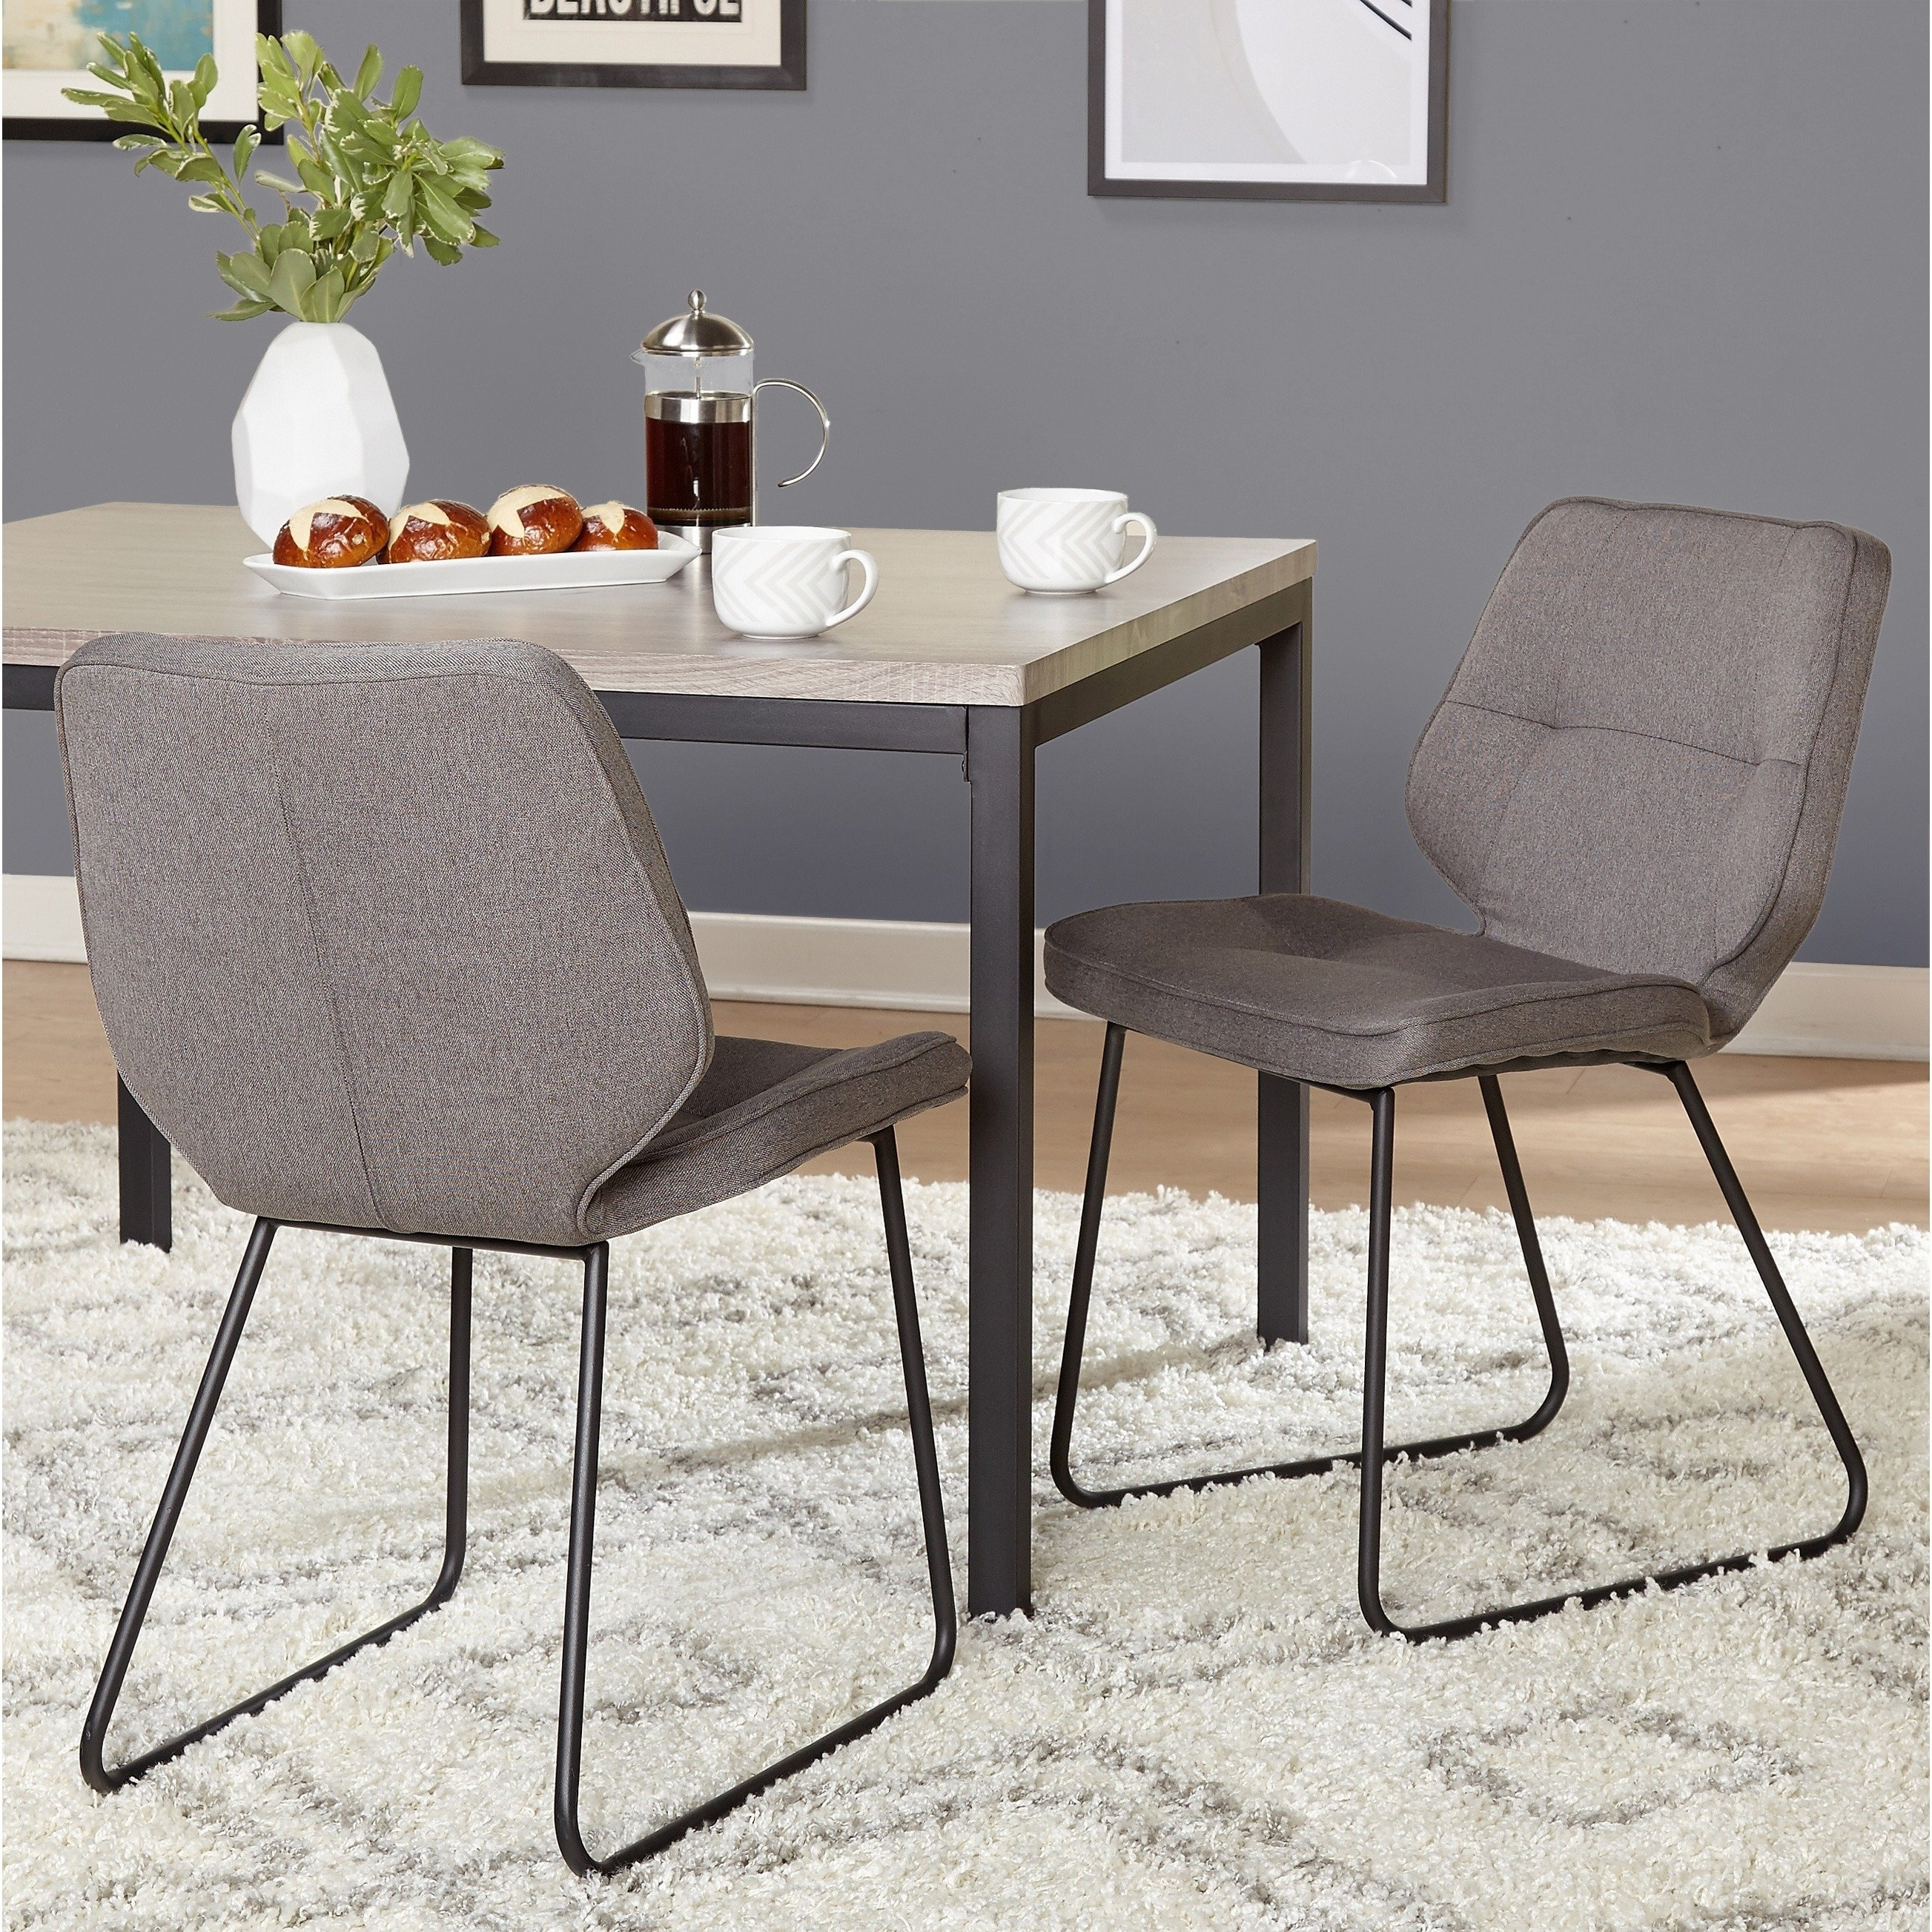 Shop Simple Living Kaden Chair (Set Of 2) – Free Shipping Today Within Current Caden 7 Piece Dining Sets With Upholstered Side Chair (View 14 of 20)